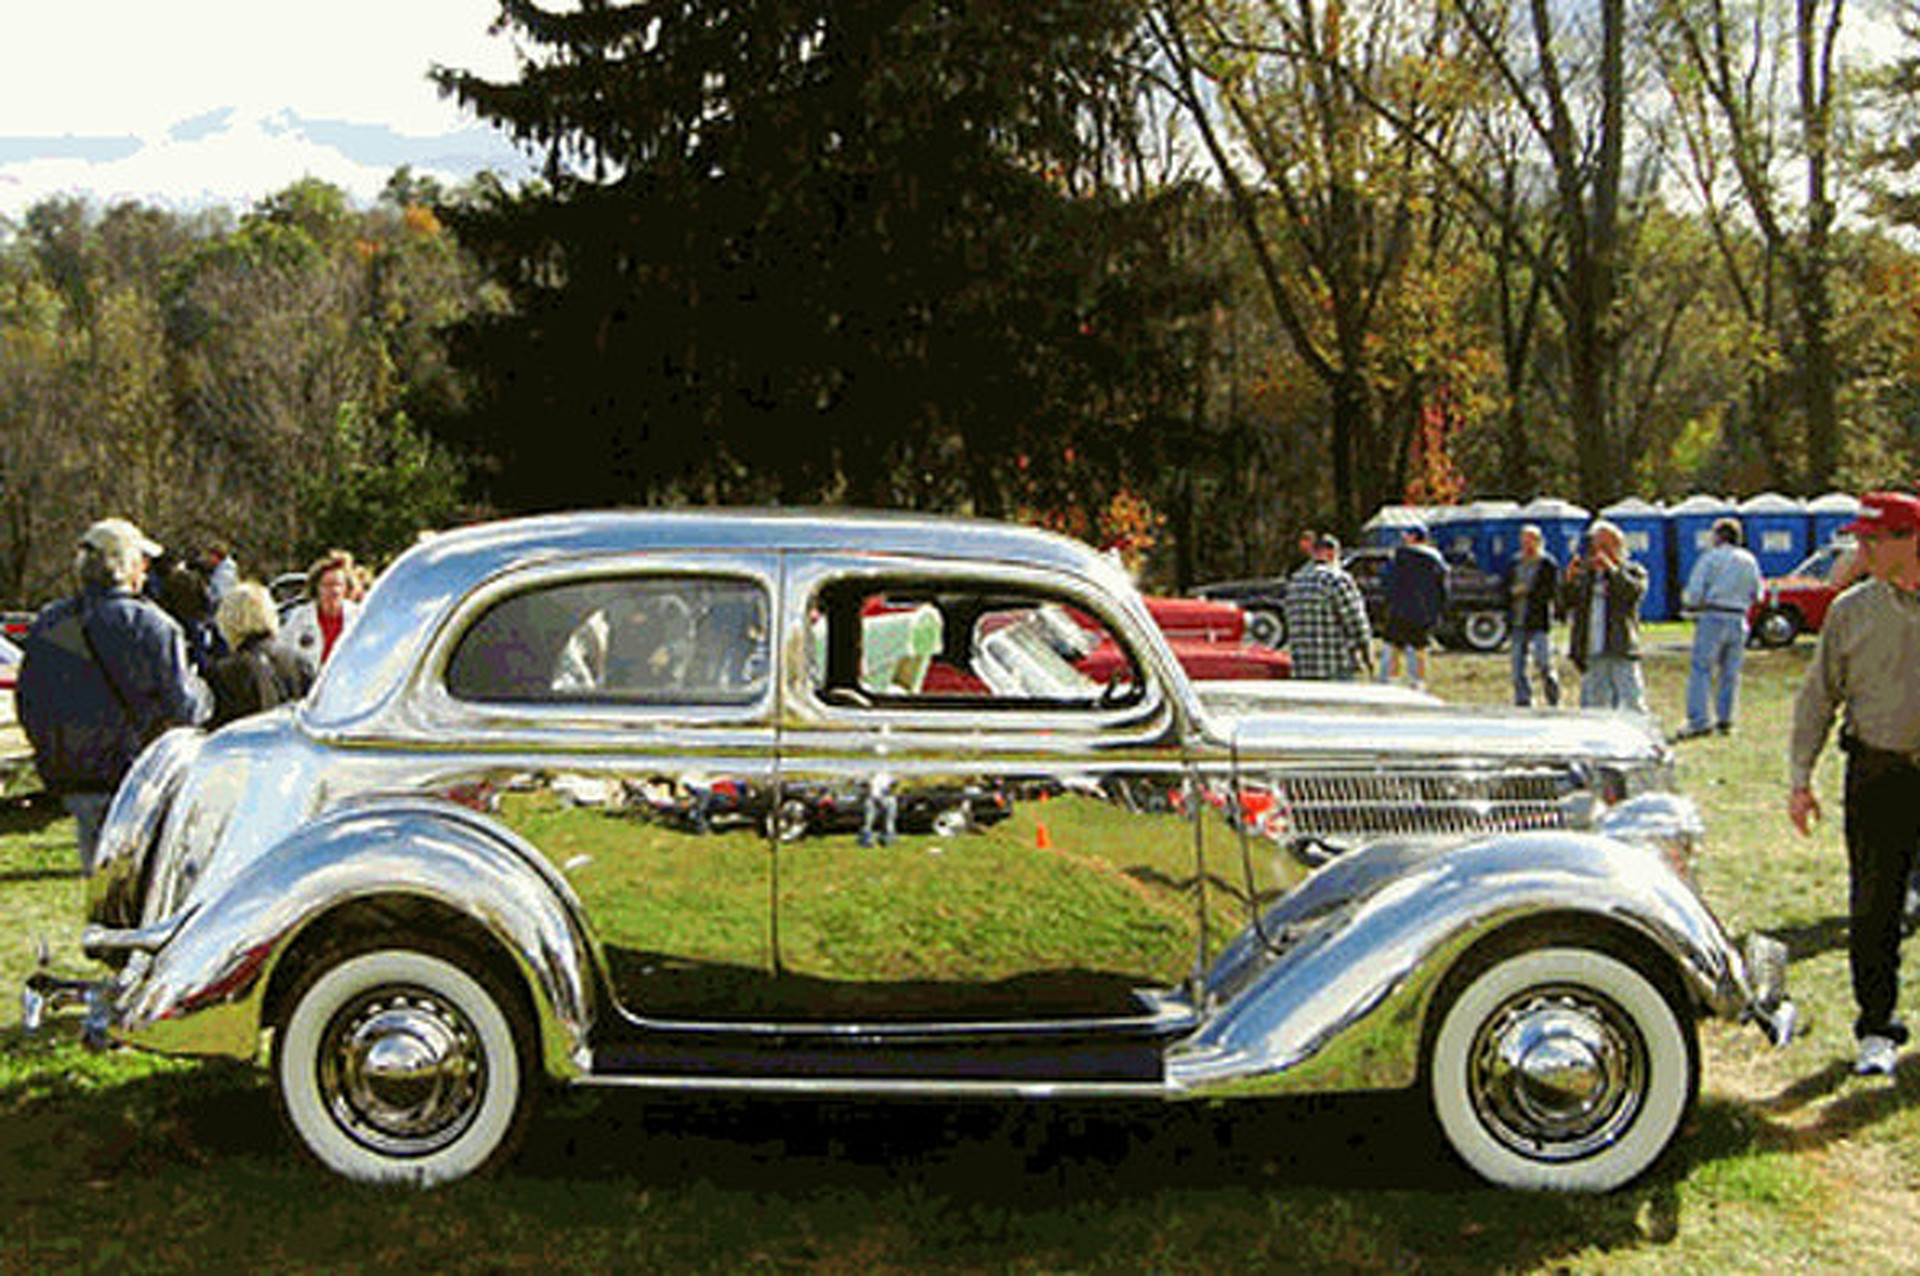 Stainless Steel Ford Tudor Sedan is Old School Bling